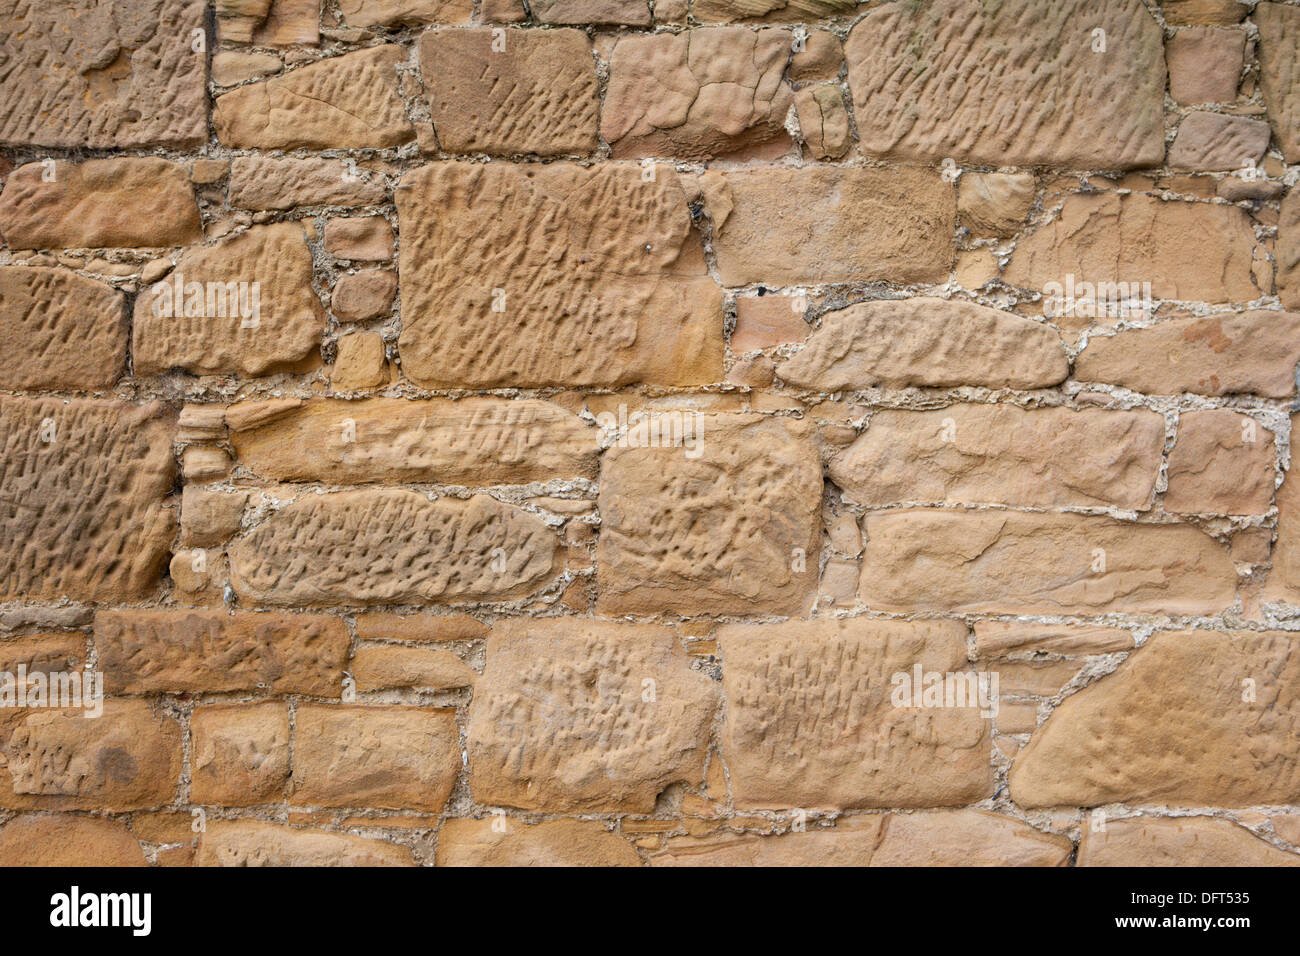 sandstone wall - Stock Image